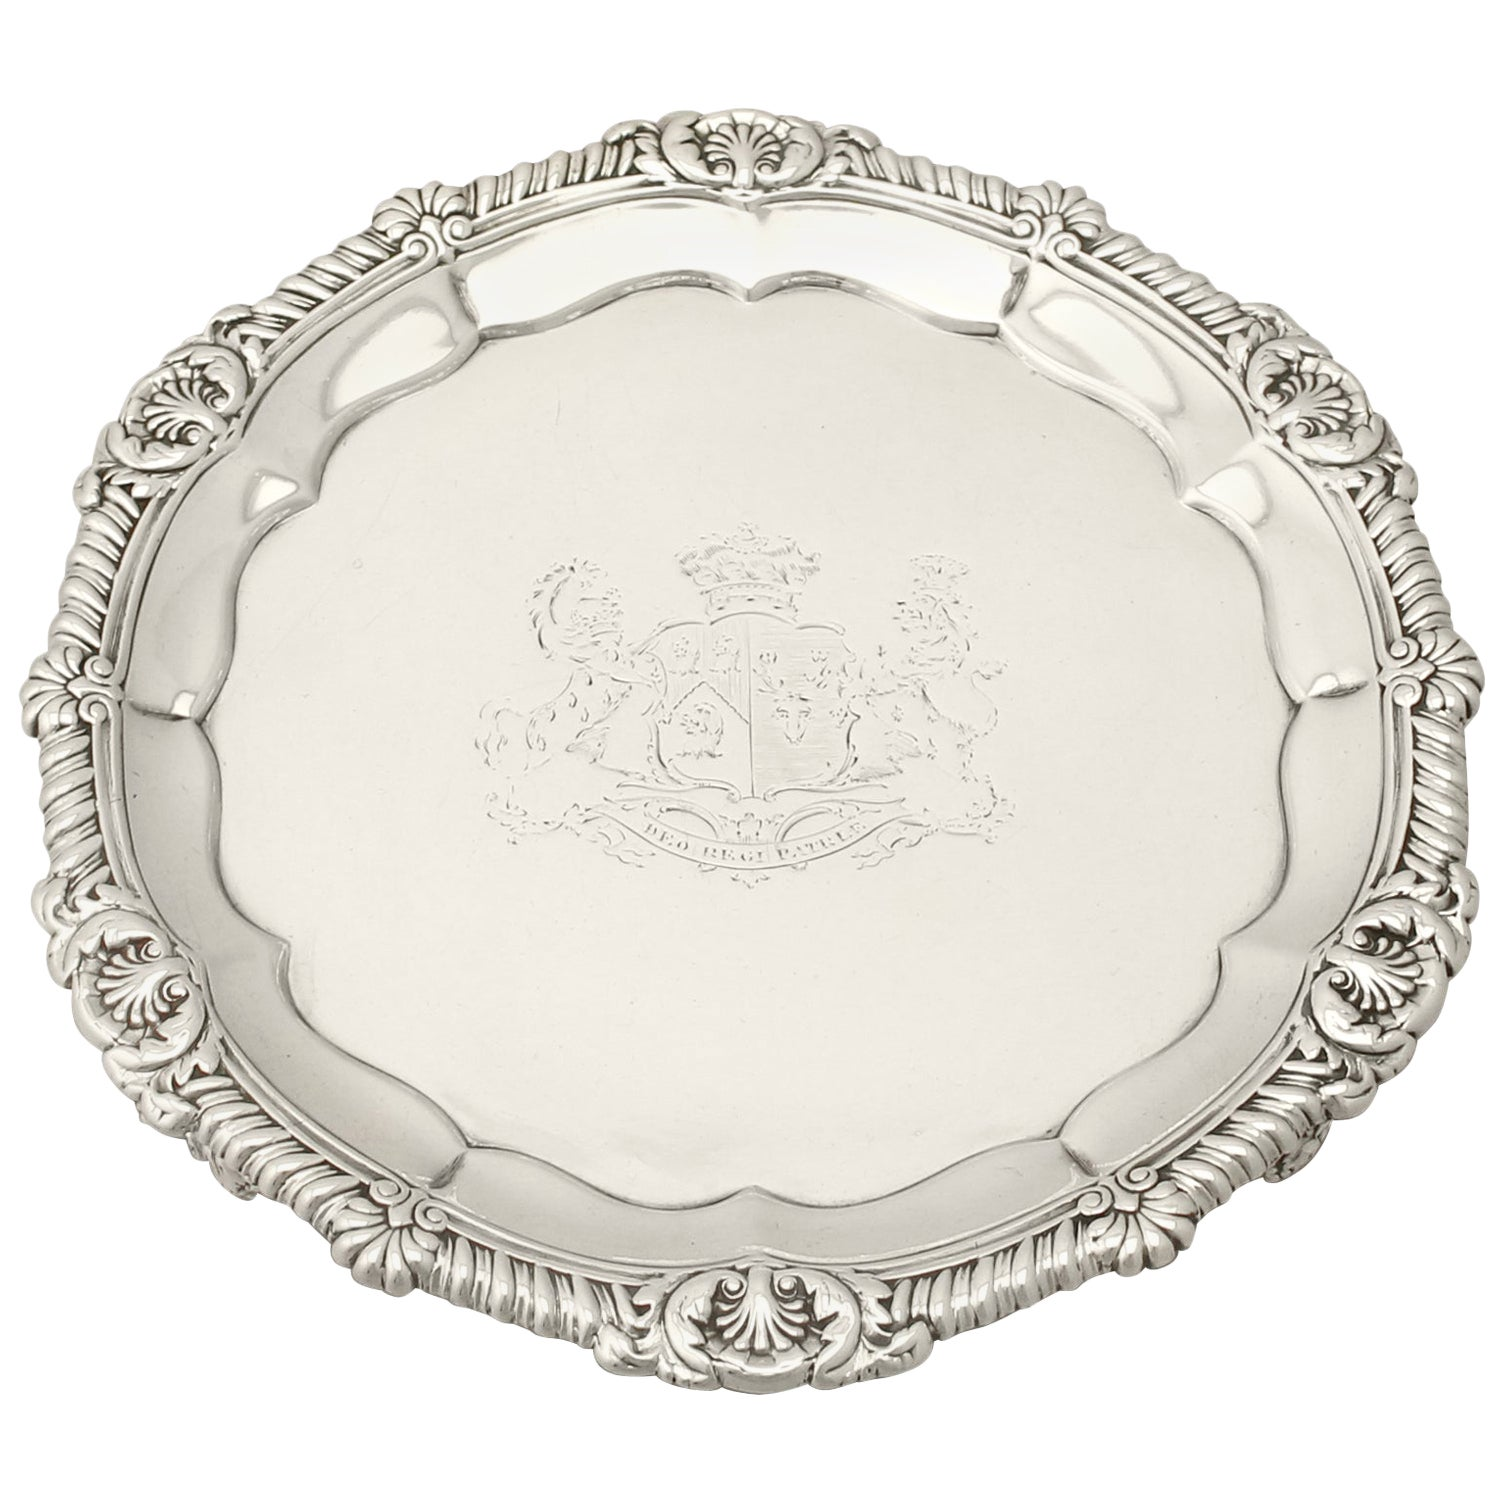 Antique George IV Sterling Silver Salver by Paul Storr